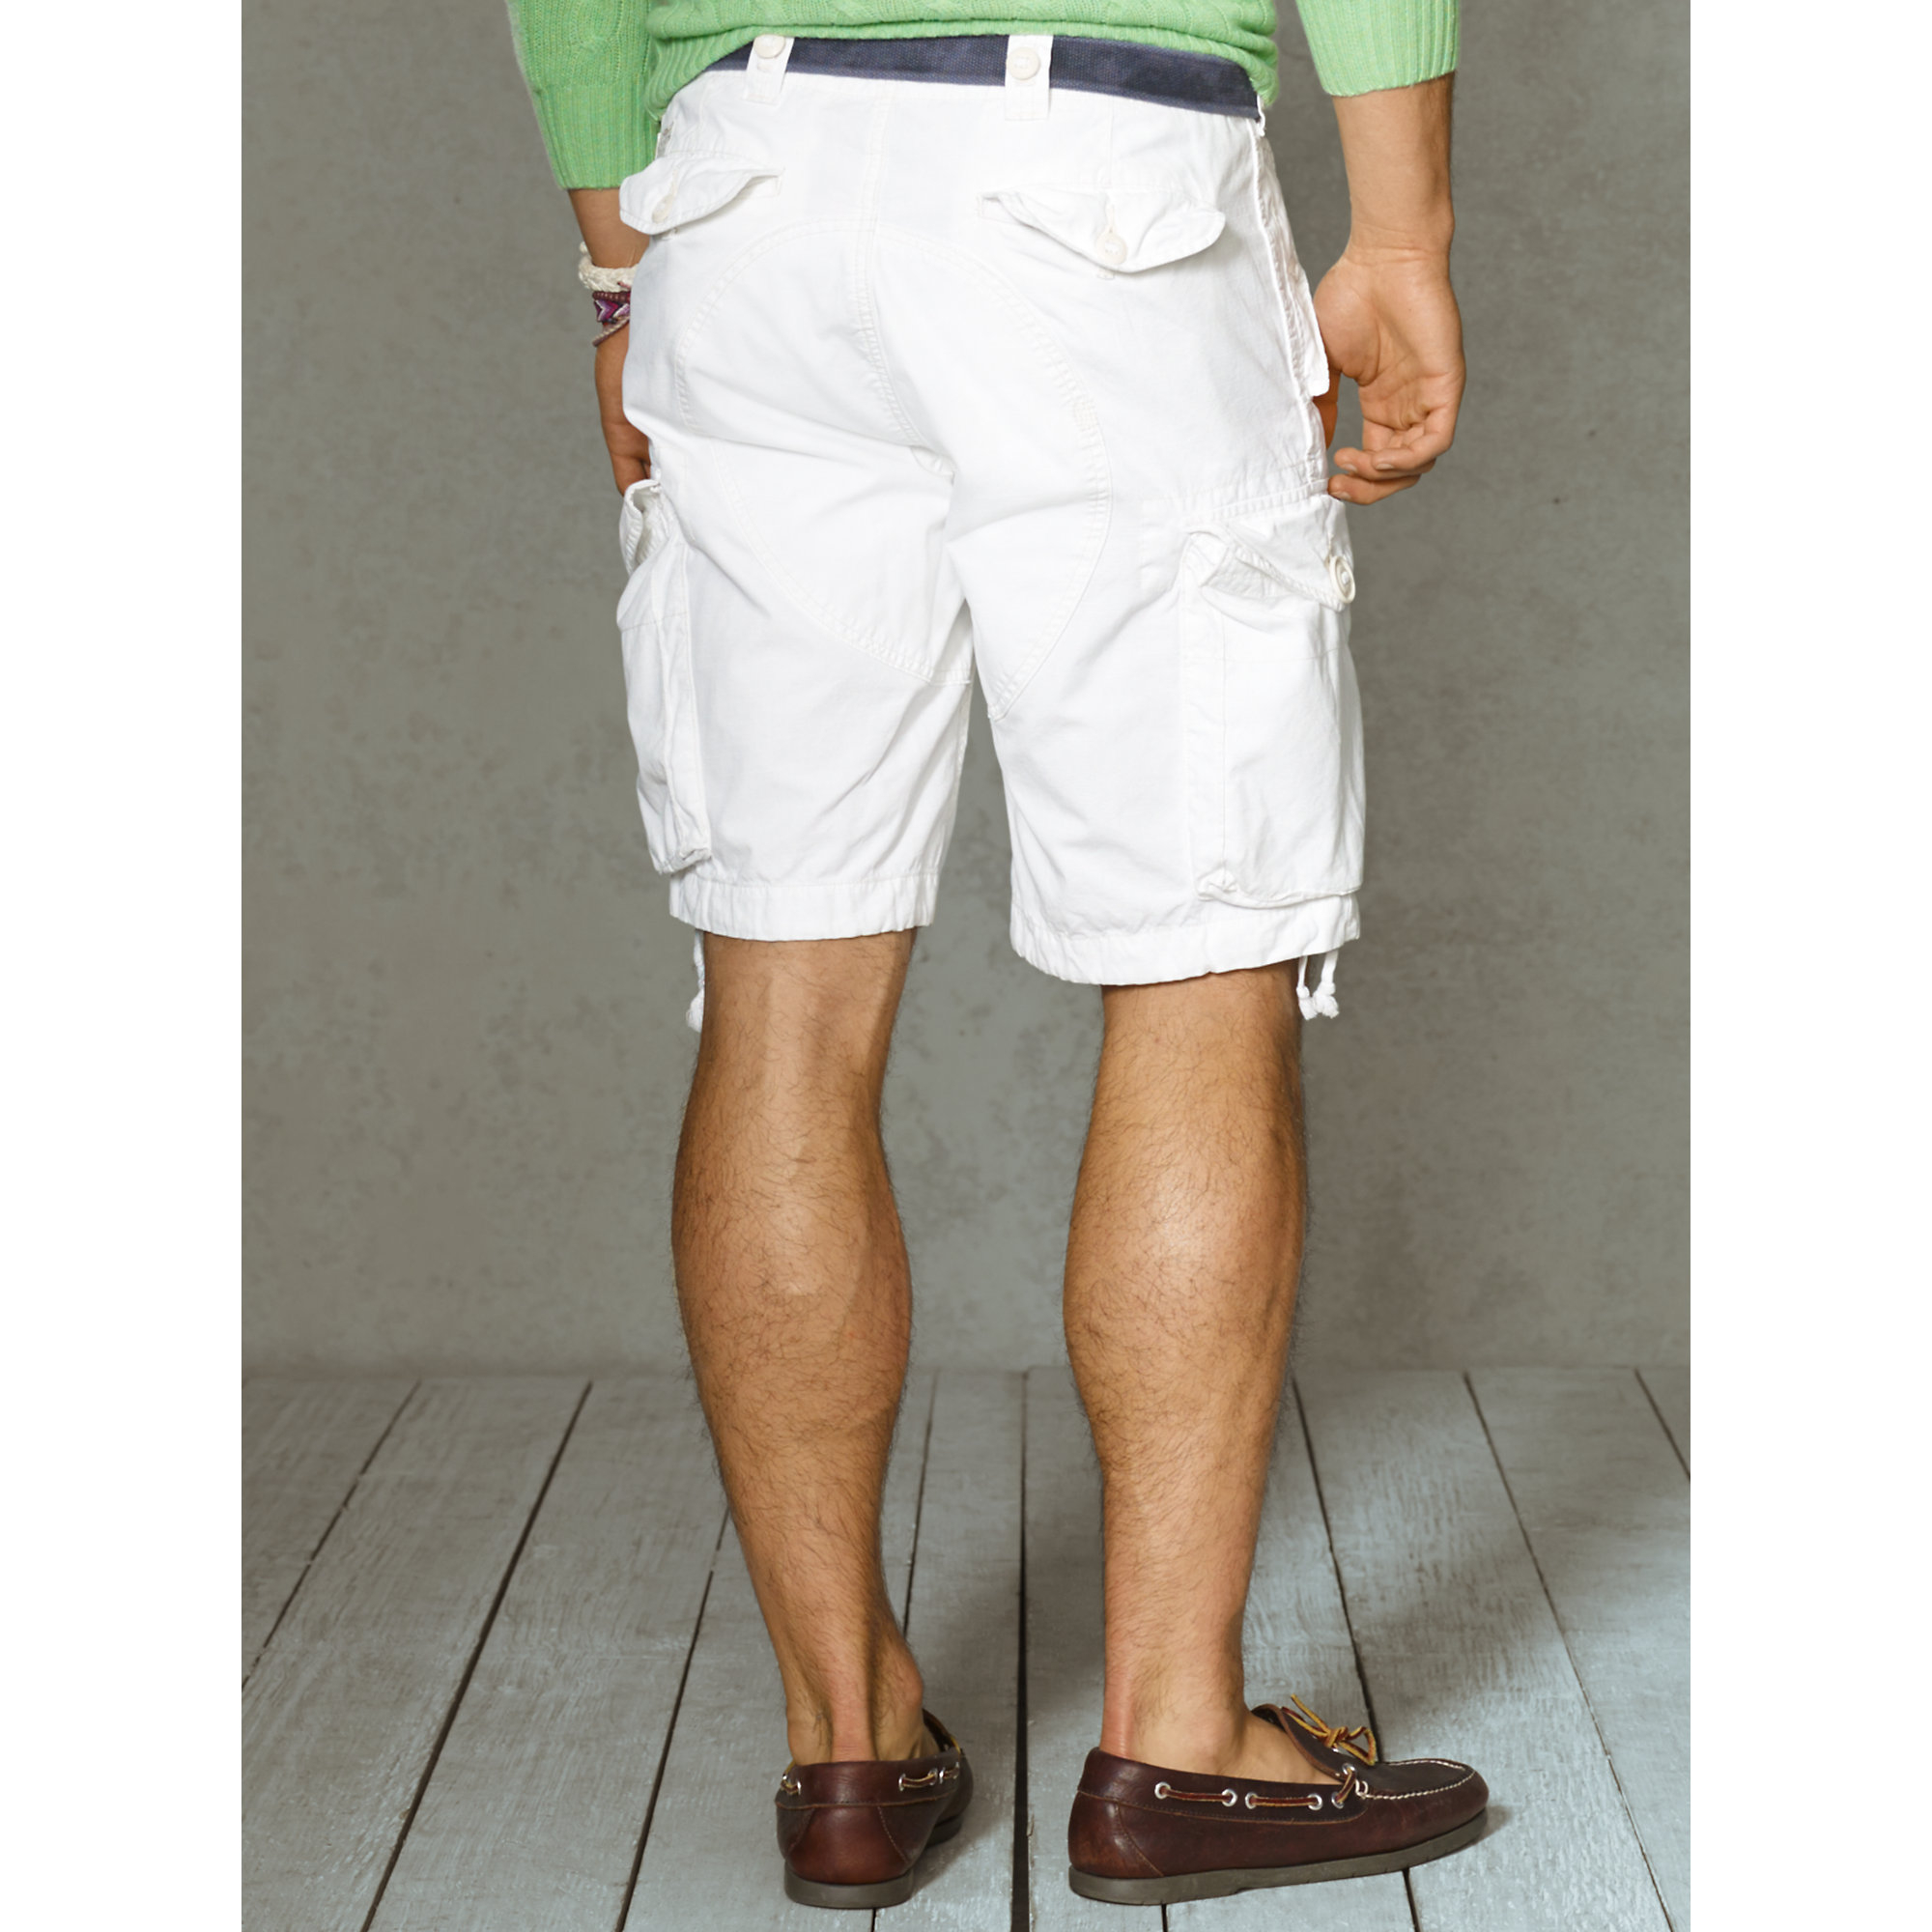 8696c1d88 Polo Ralph Lauren Classic-Fit Cargo Short in White for Men - Lyst